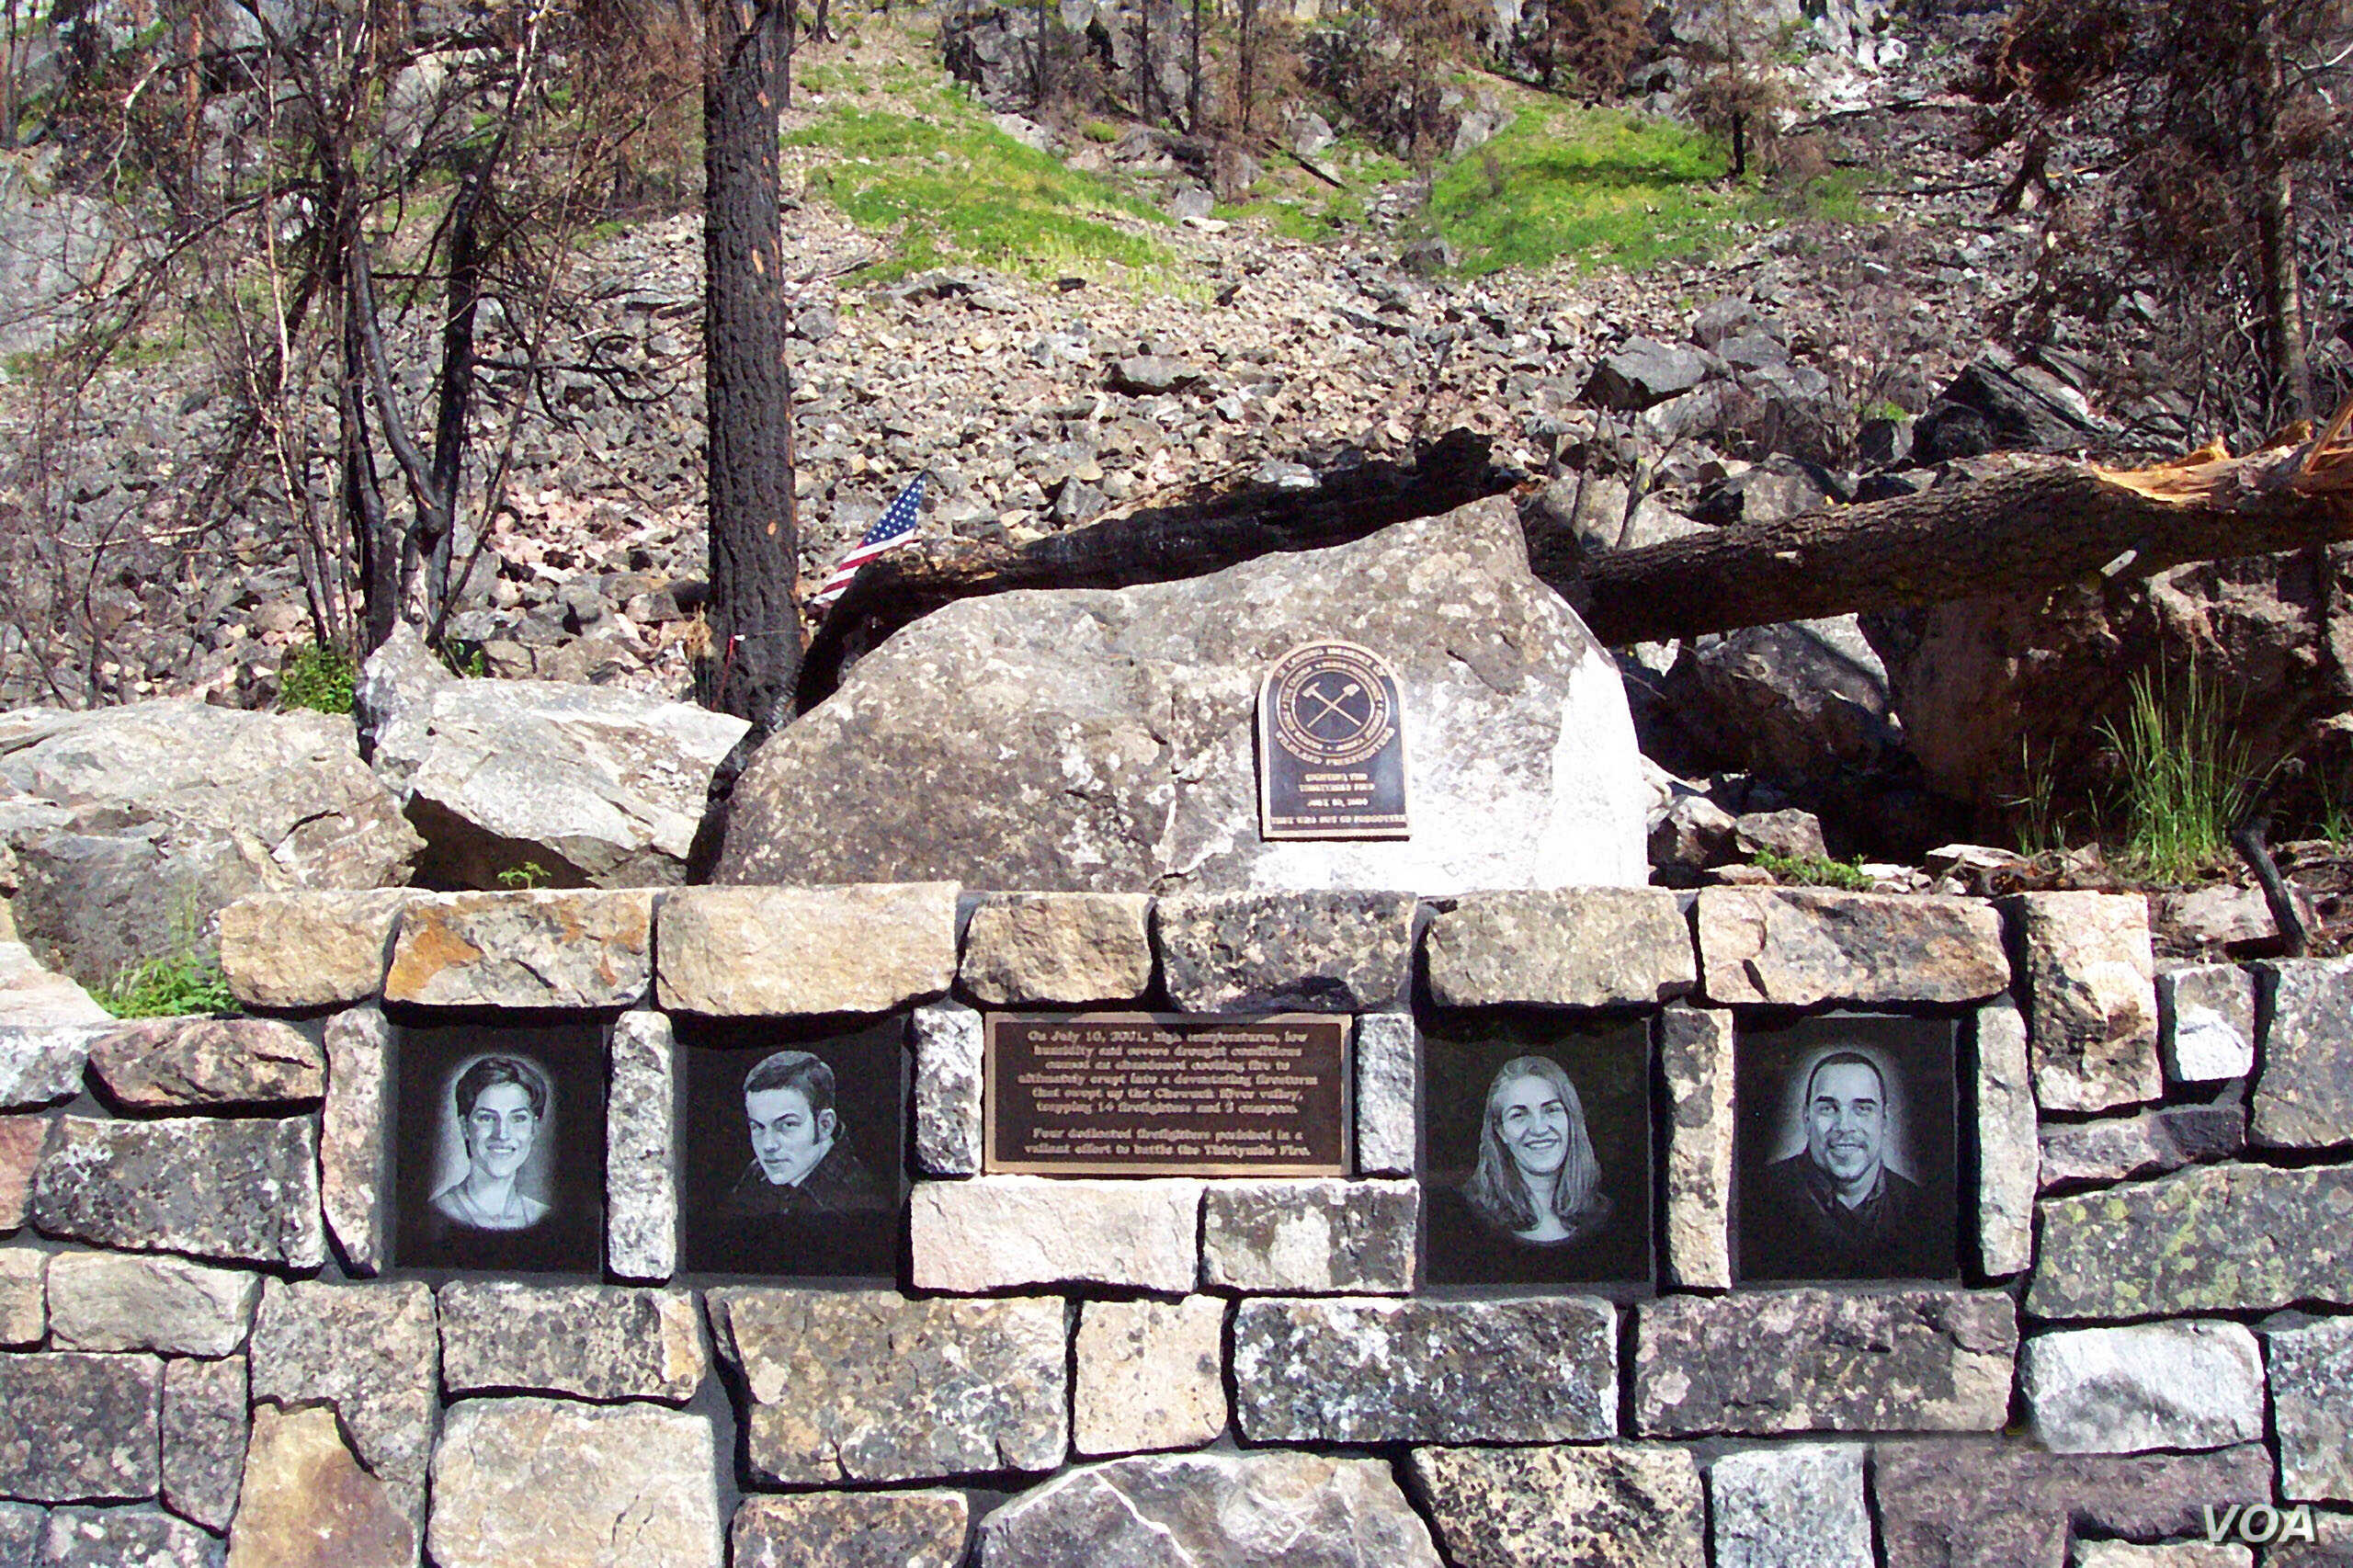 The Thirtymile Fire Memorial was constructed at the site where Jessica Johnson, Devin Weaver, Karen FitzPatrick and Tom Craven died on July 10, 2001, fighting a fire in the Okanogan-Wenatchee National Forest.